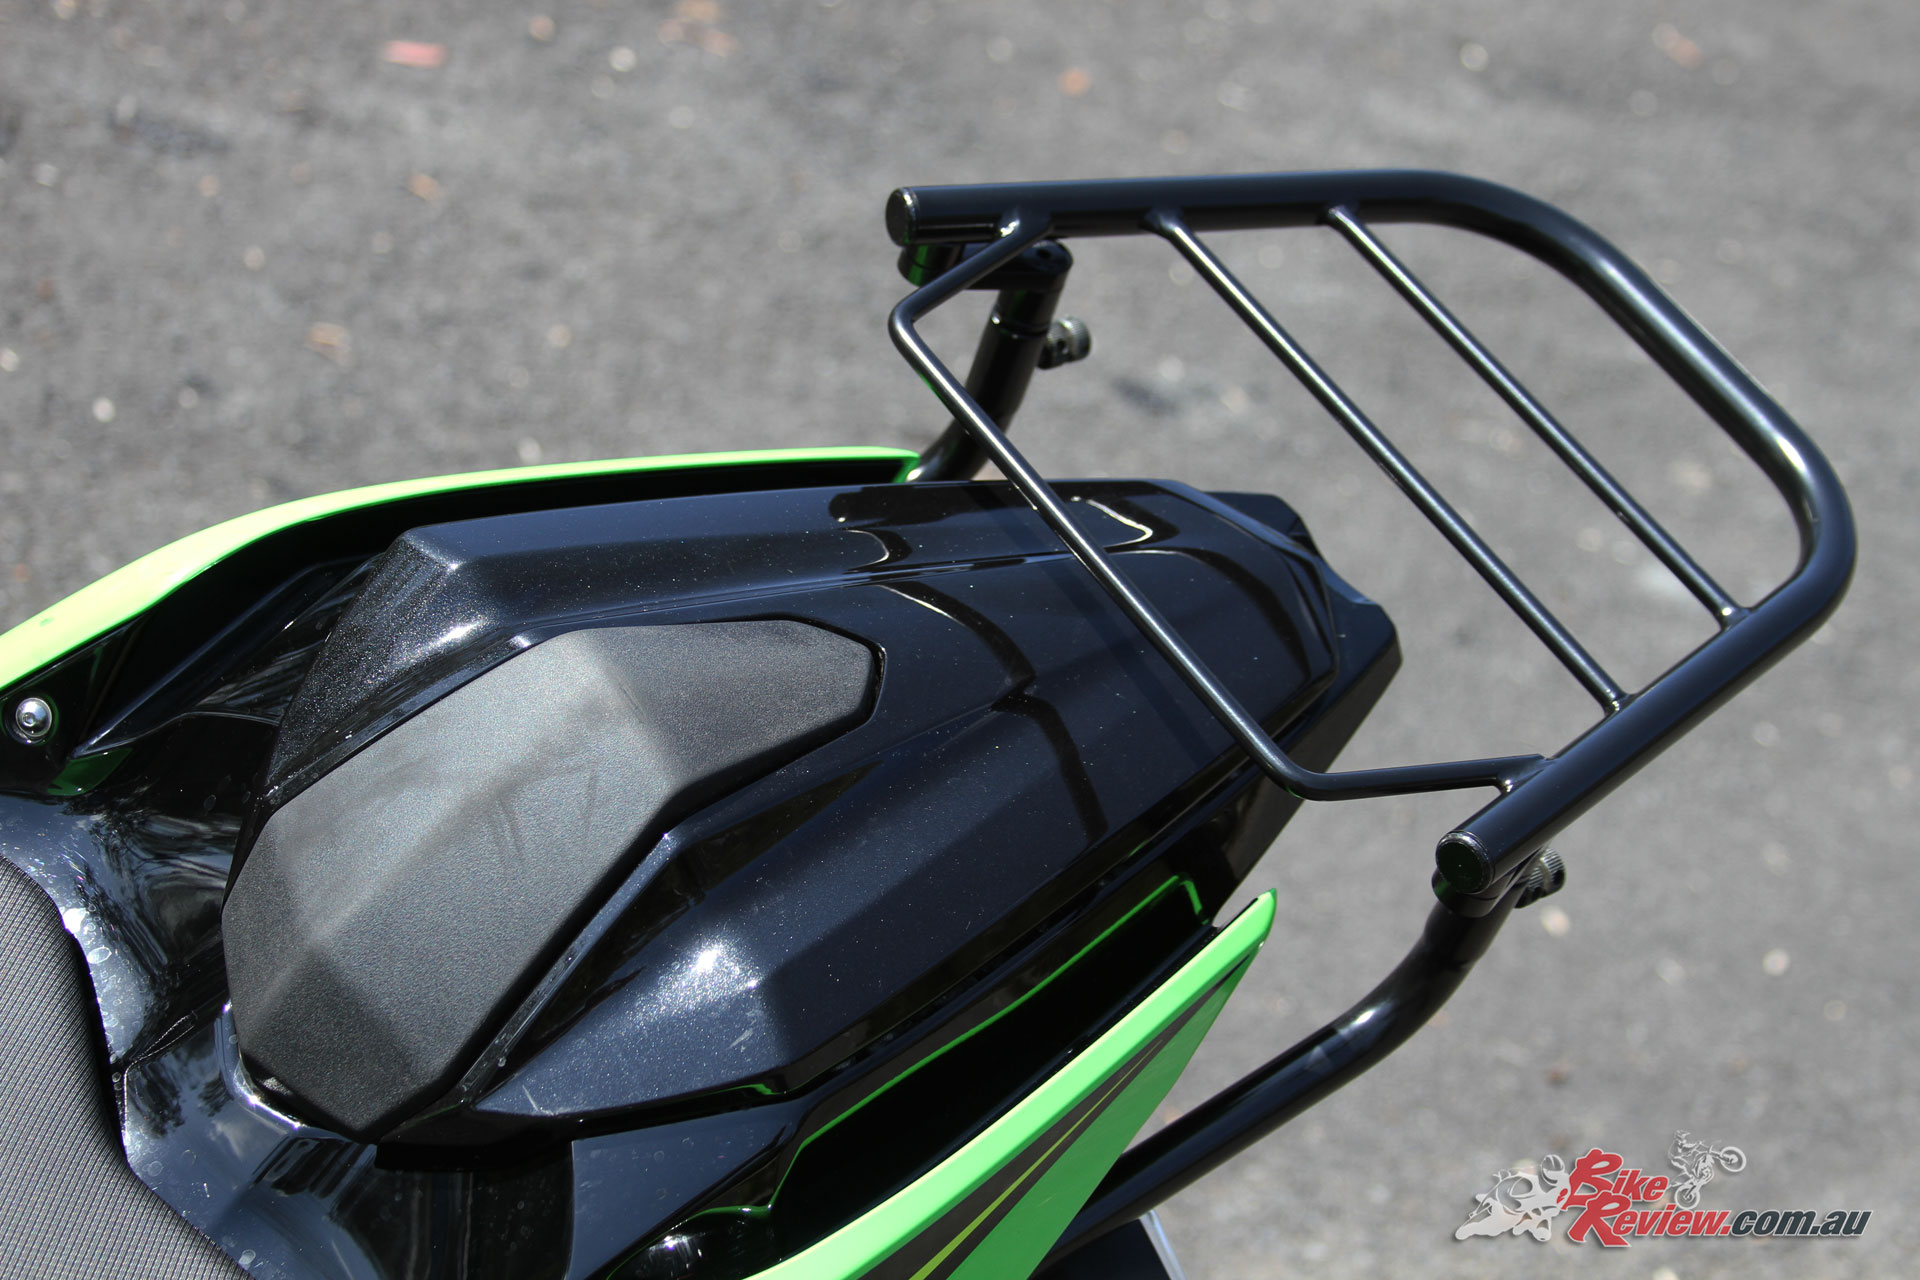 The Ventura EVO Rack and Kawasaki Seat Cowl are a great sporty combo